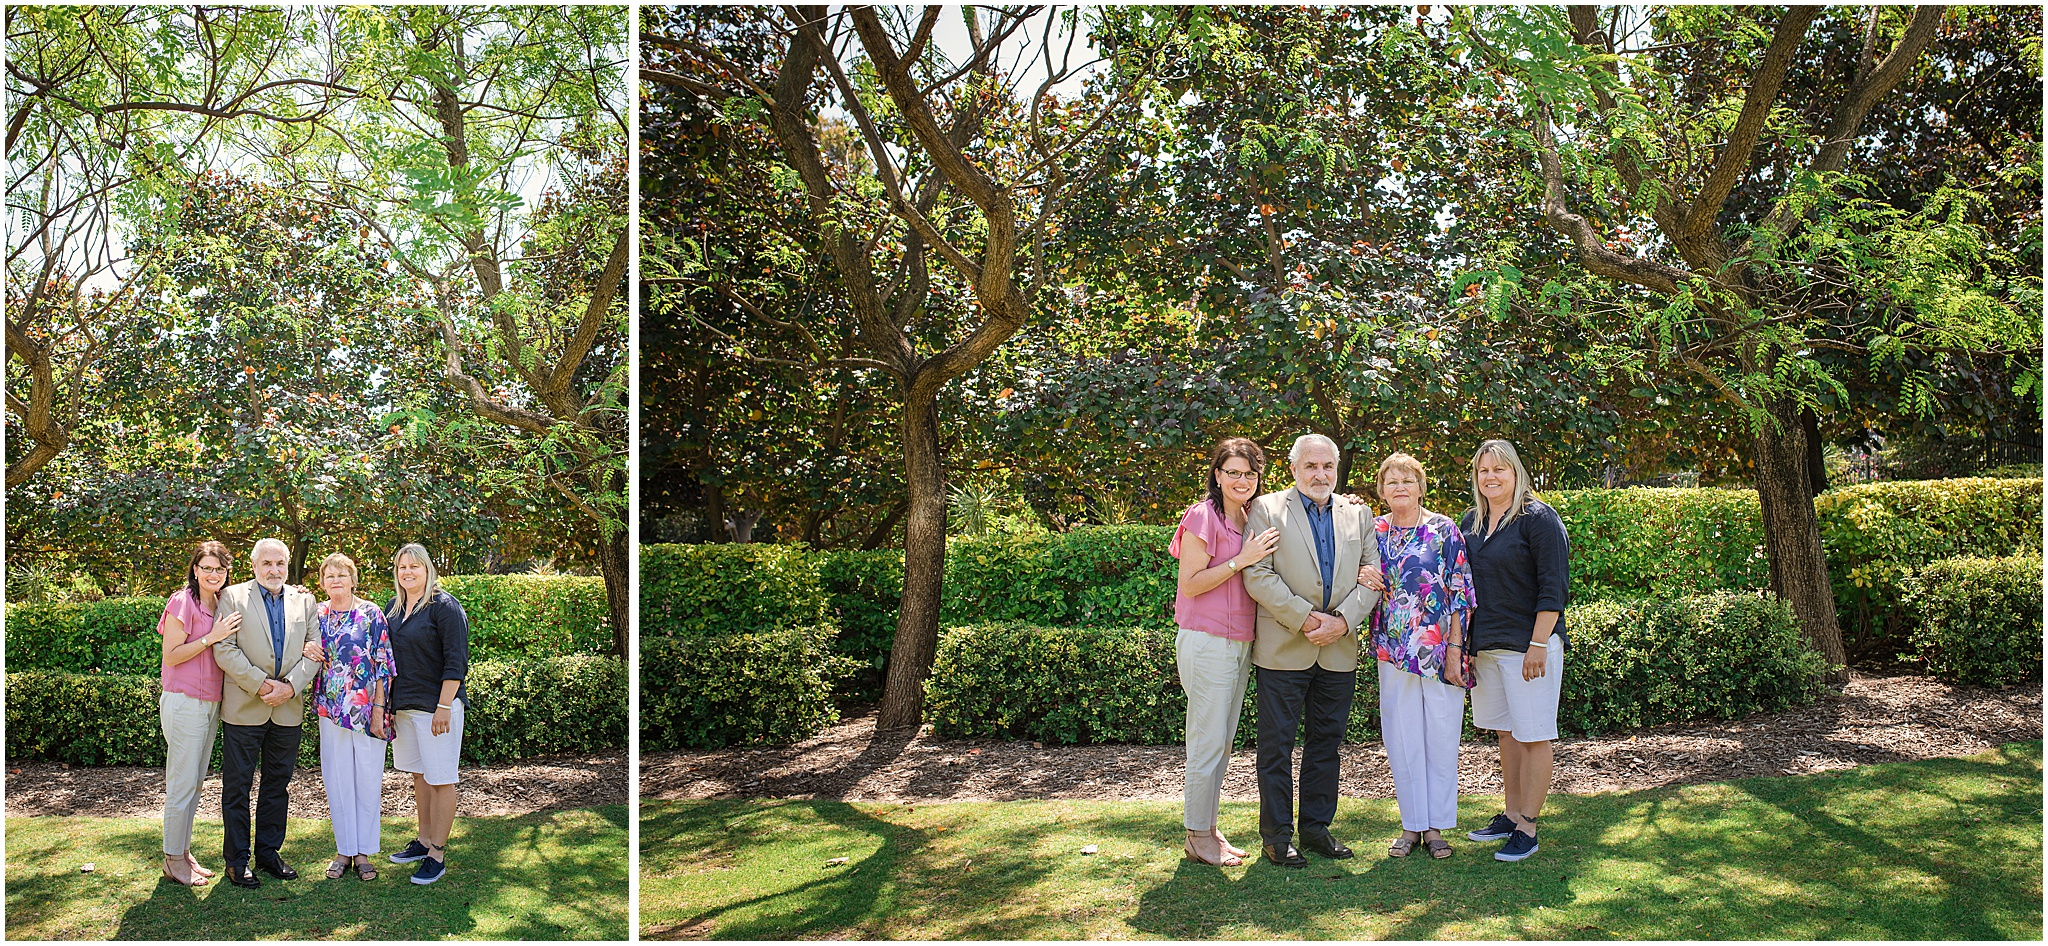 Family photography at Burswood, Perth.